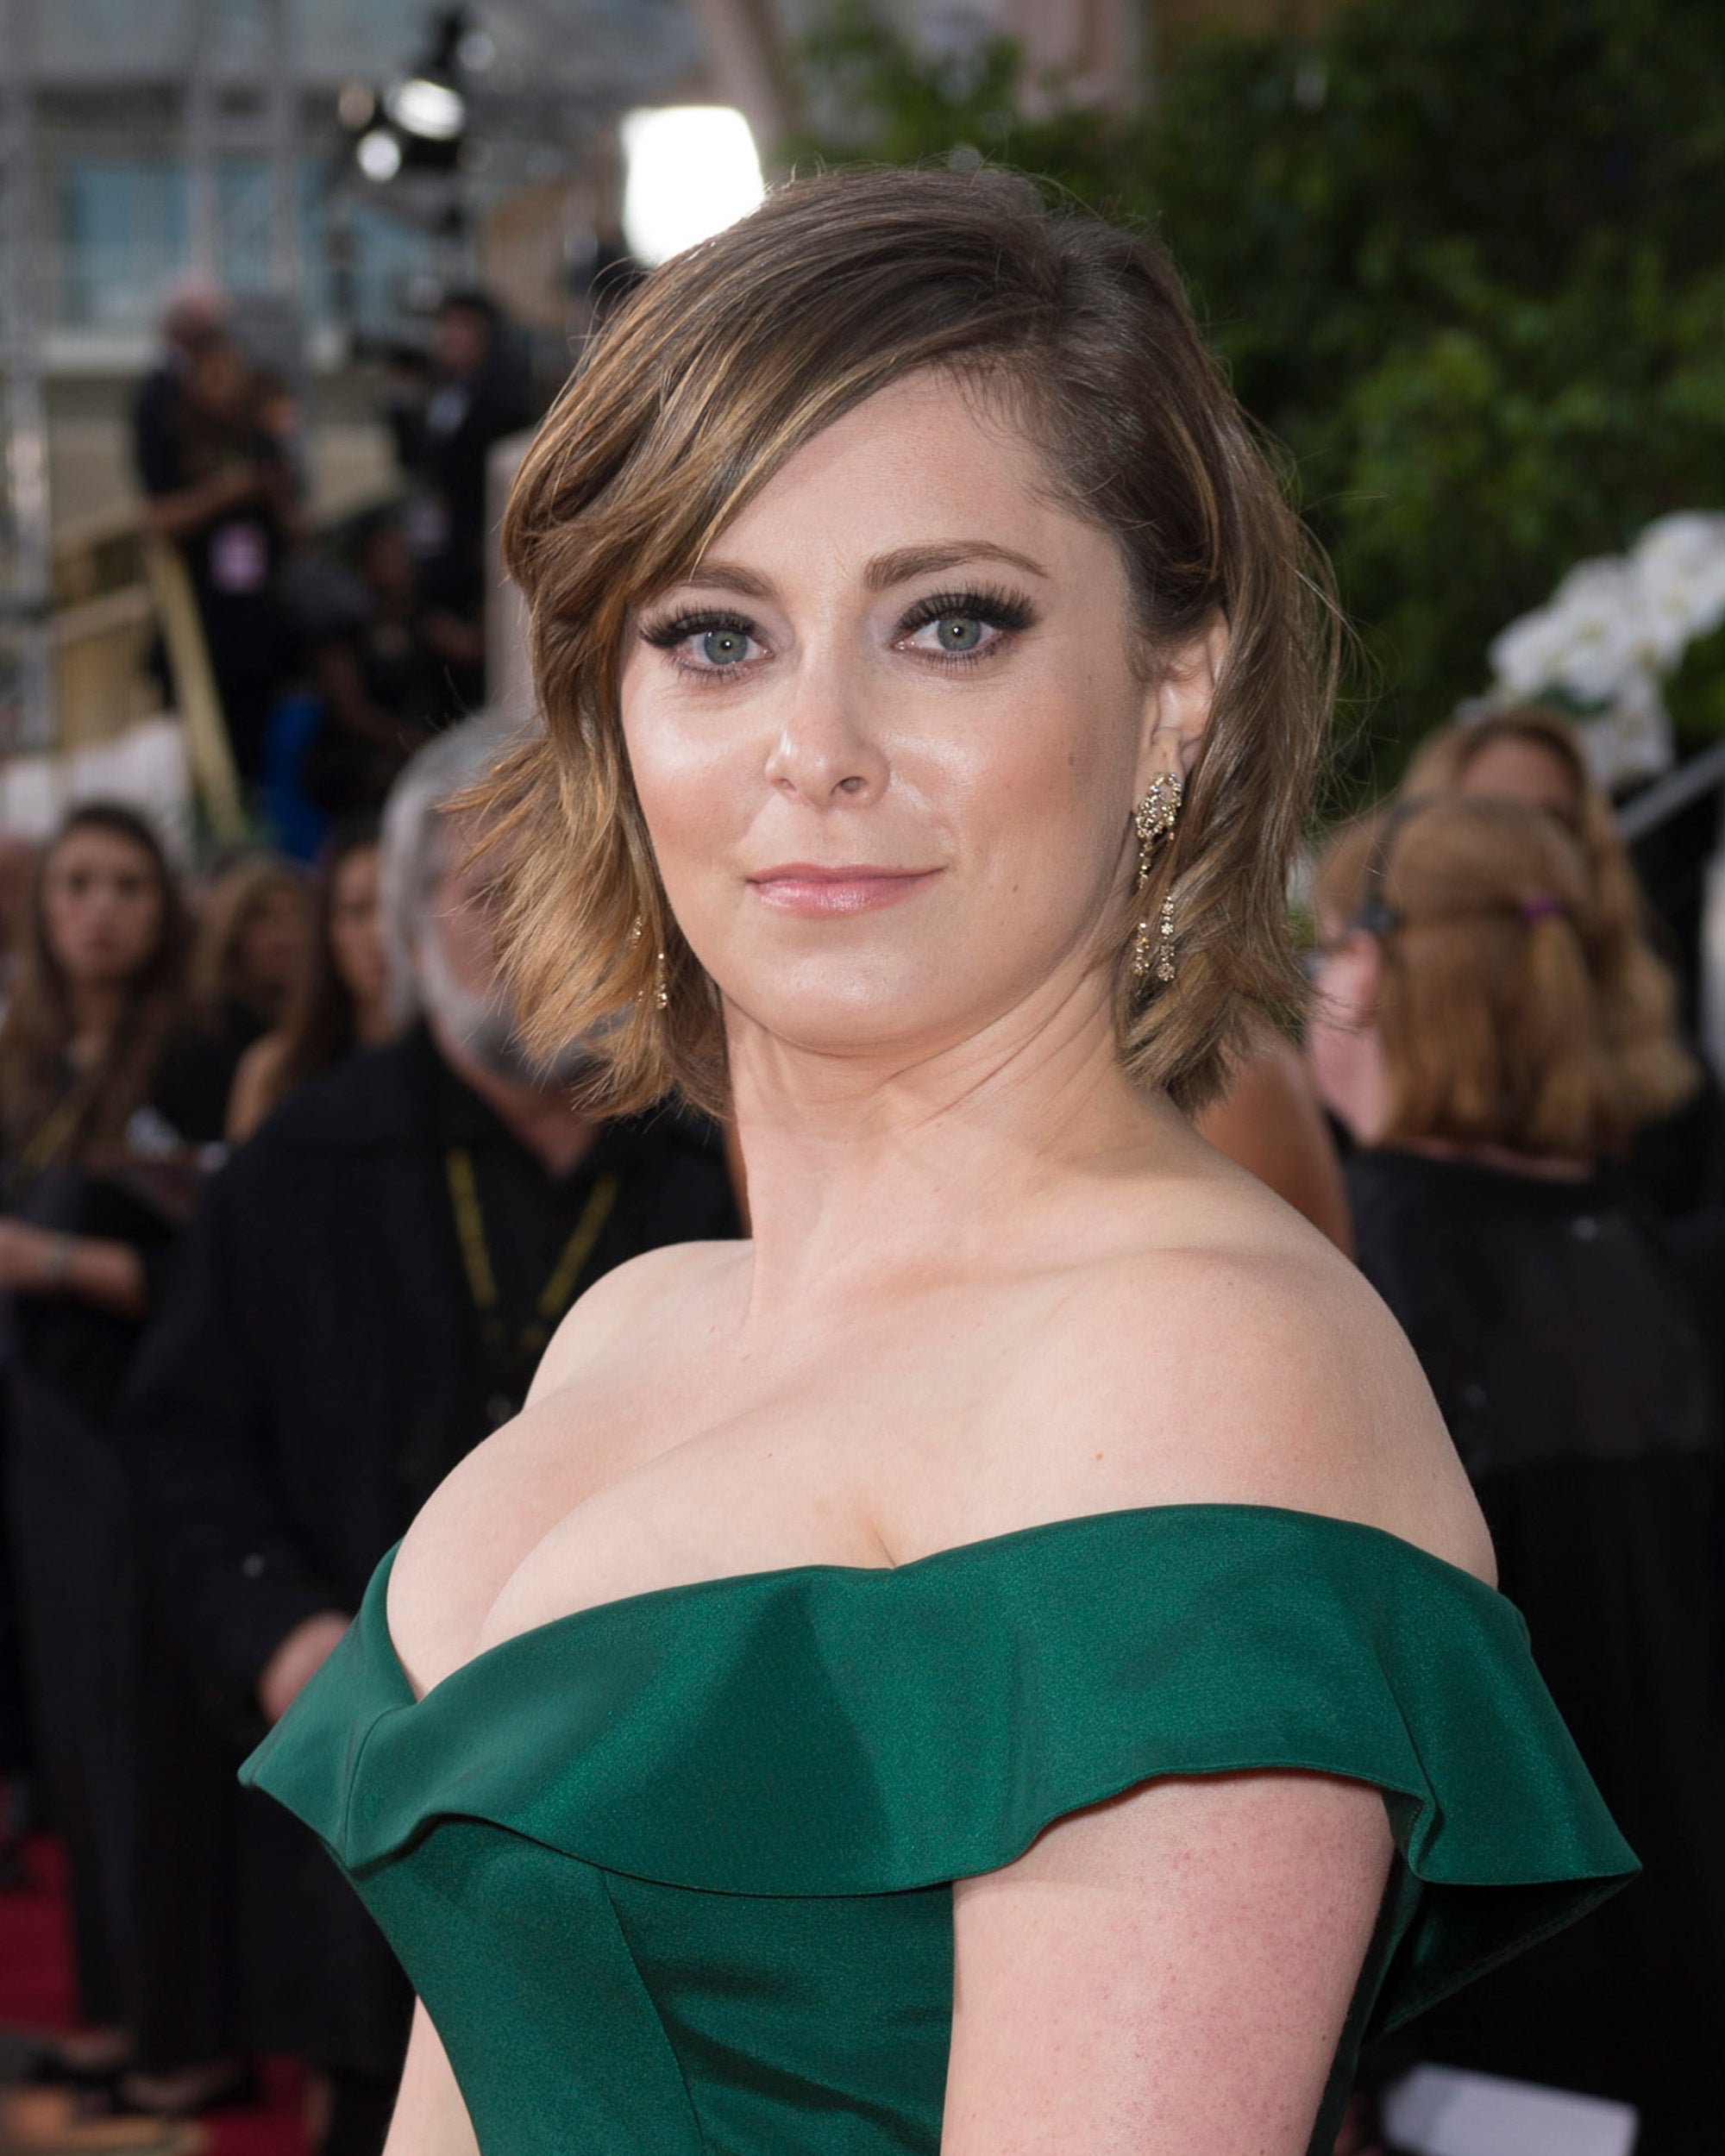 Images Rachel Bloom nudes (91 photos), Sexy, Leaked, Instagram, panties 2020